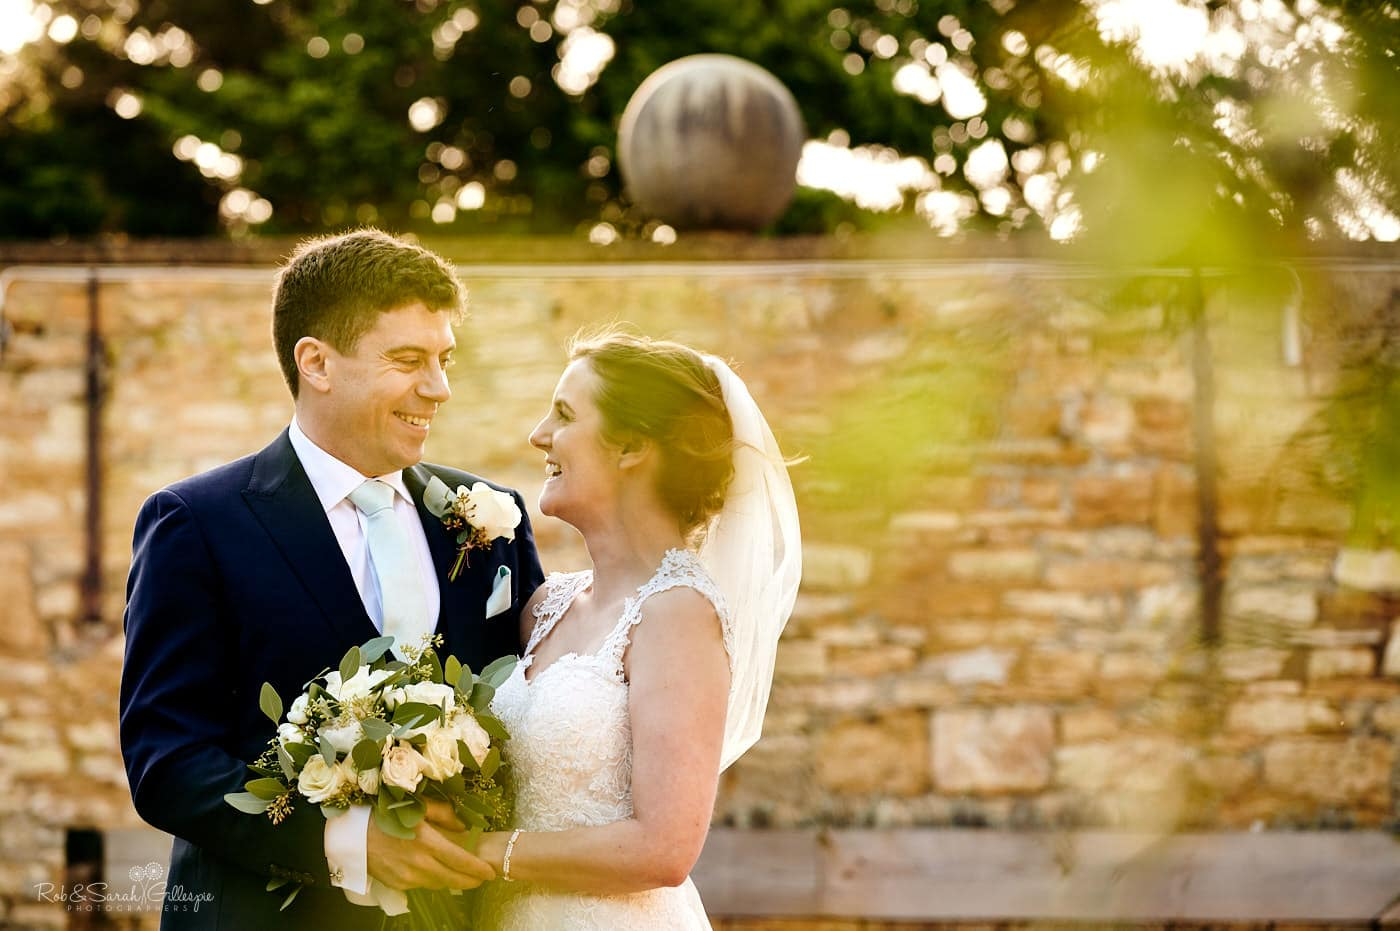 Wedding photograph of bride and groom at Lapstone Barn